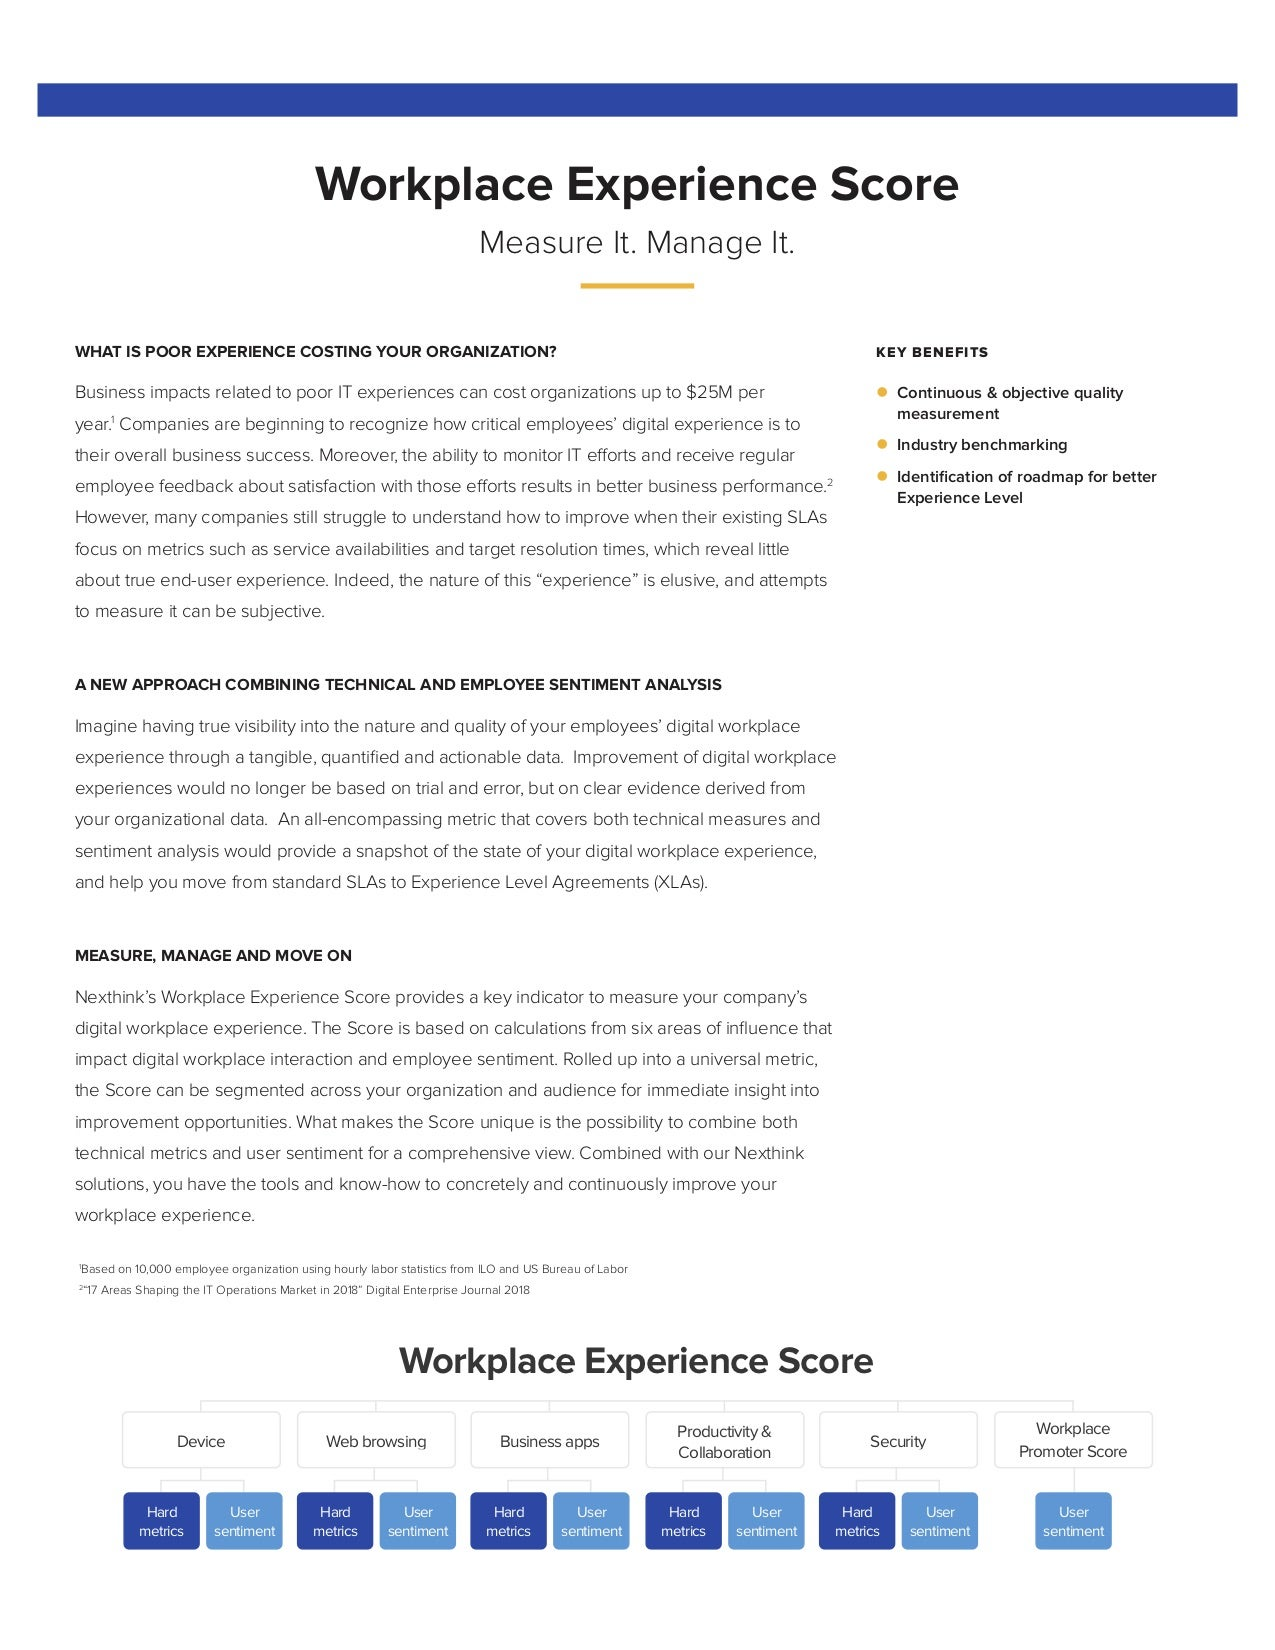 Workplace Experience Score Fact Sheet